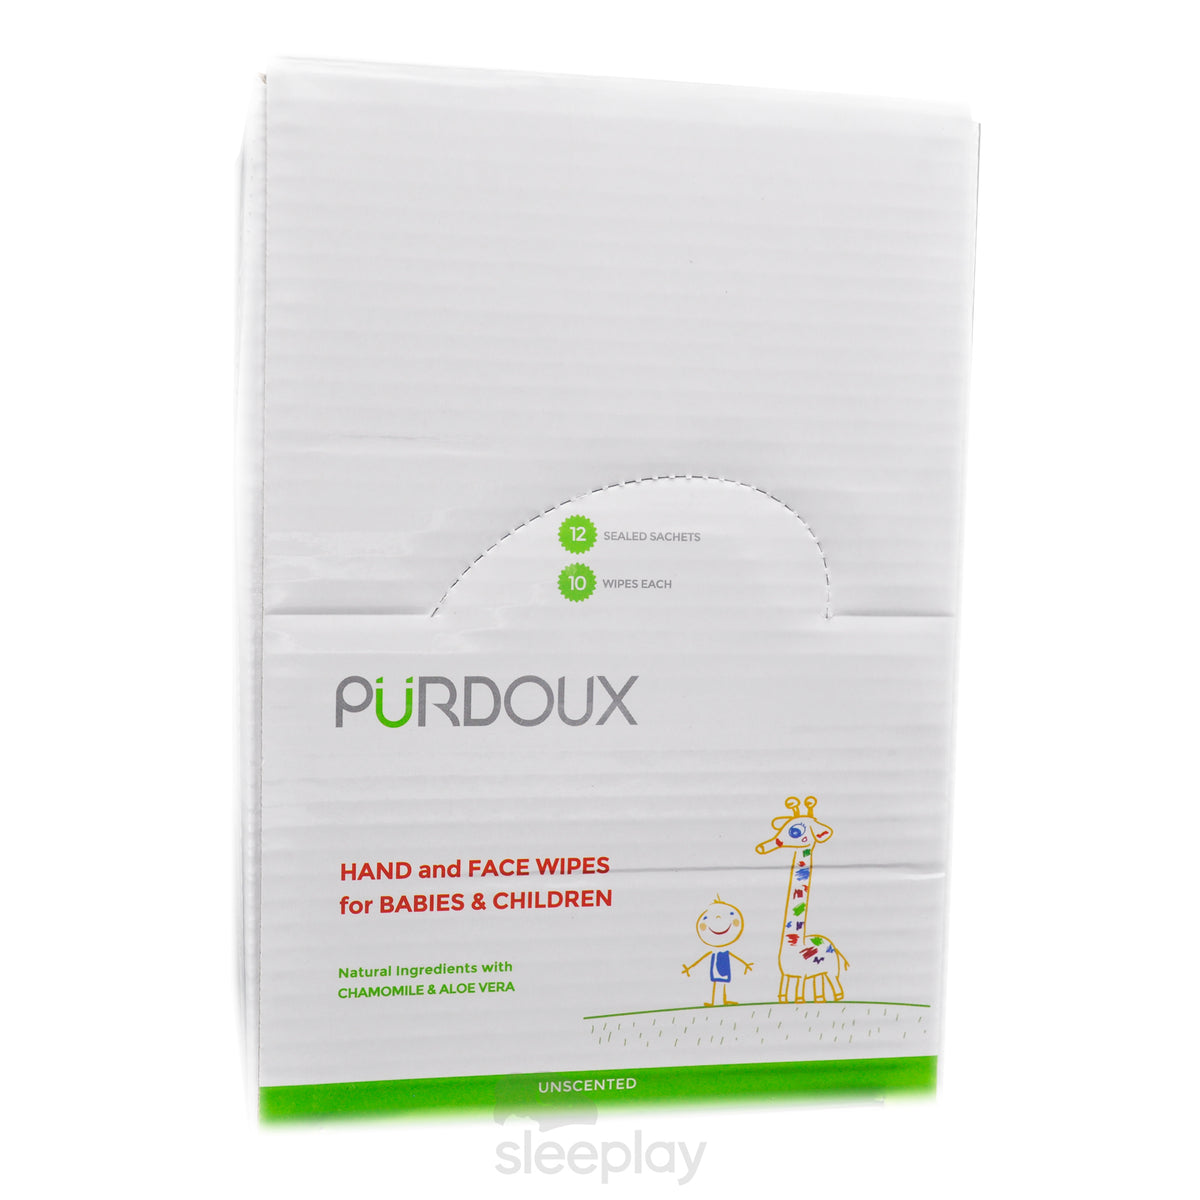 Box Of Purdoux Babies And Children's Wipes